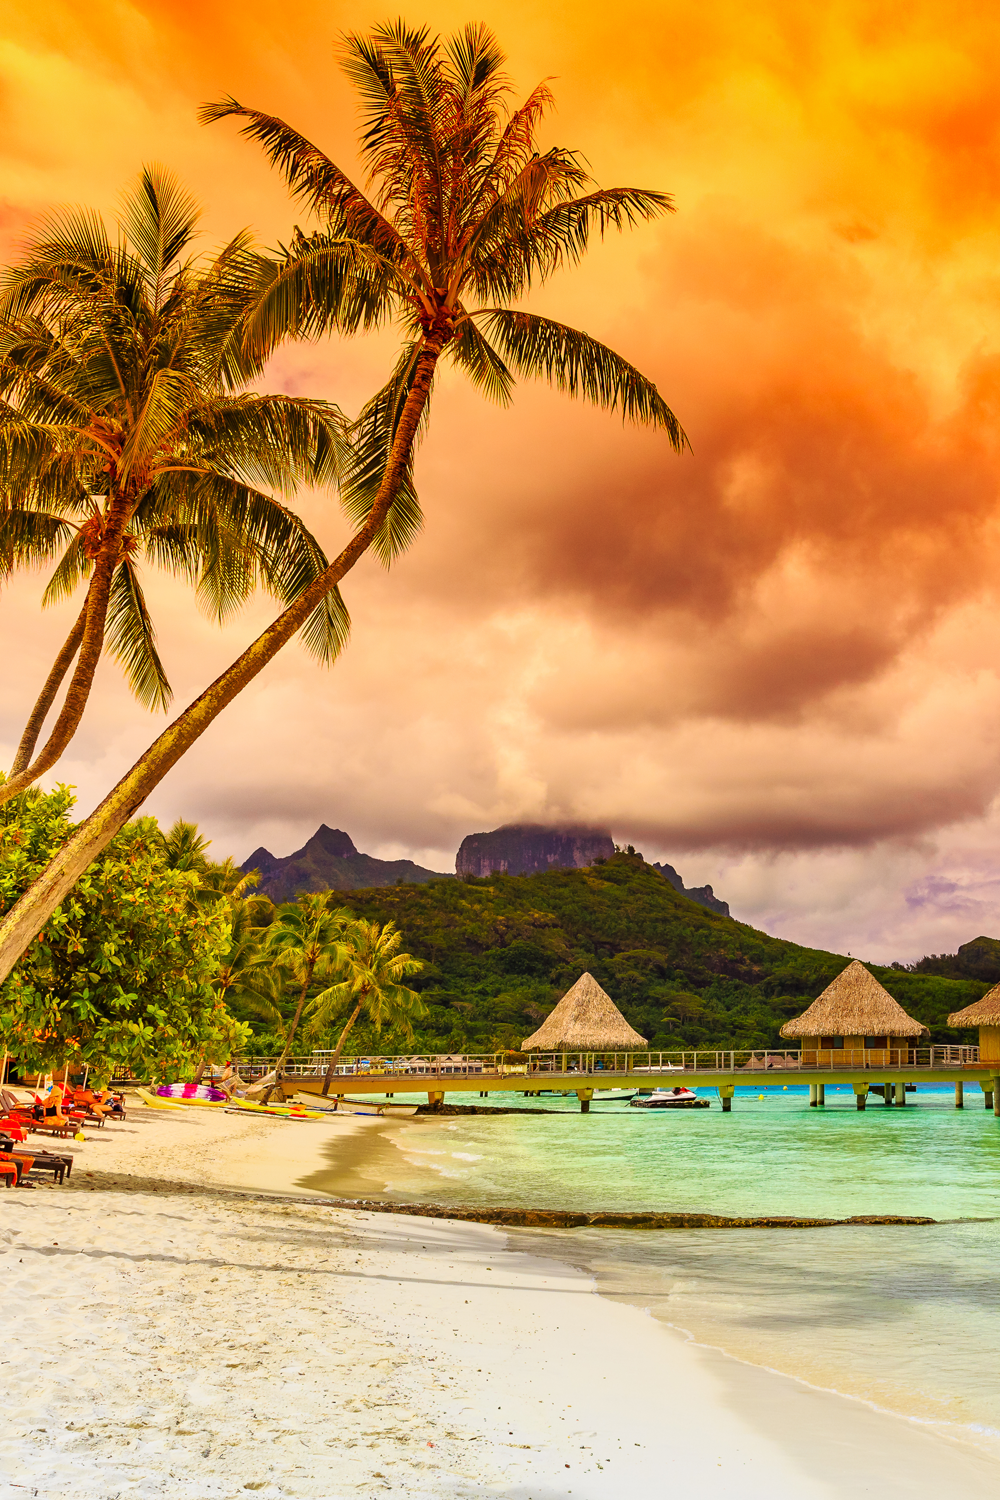 Stunning Bora Beach Scenery And Facts I Totally Love These Photos Bungalows Beaches Are Amazing Can Just Stare At